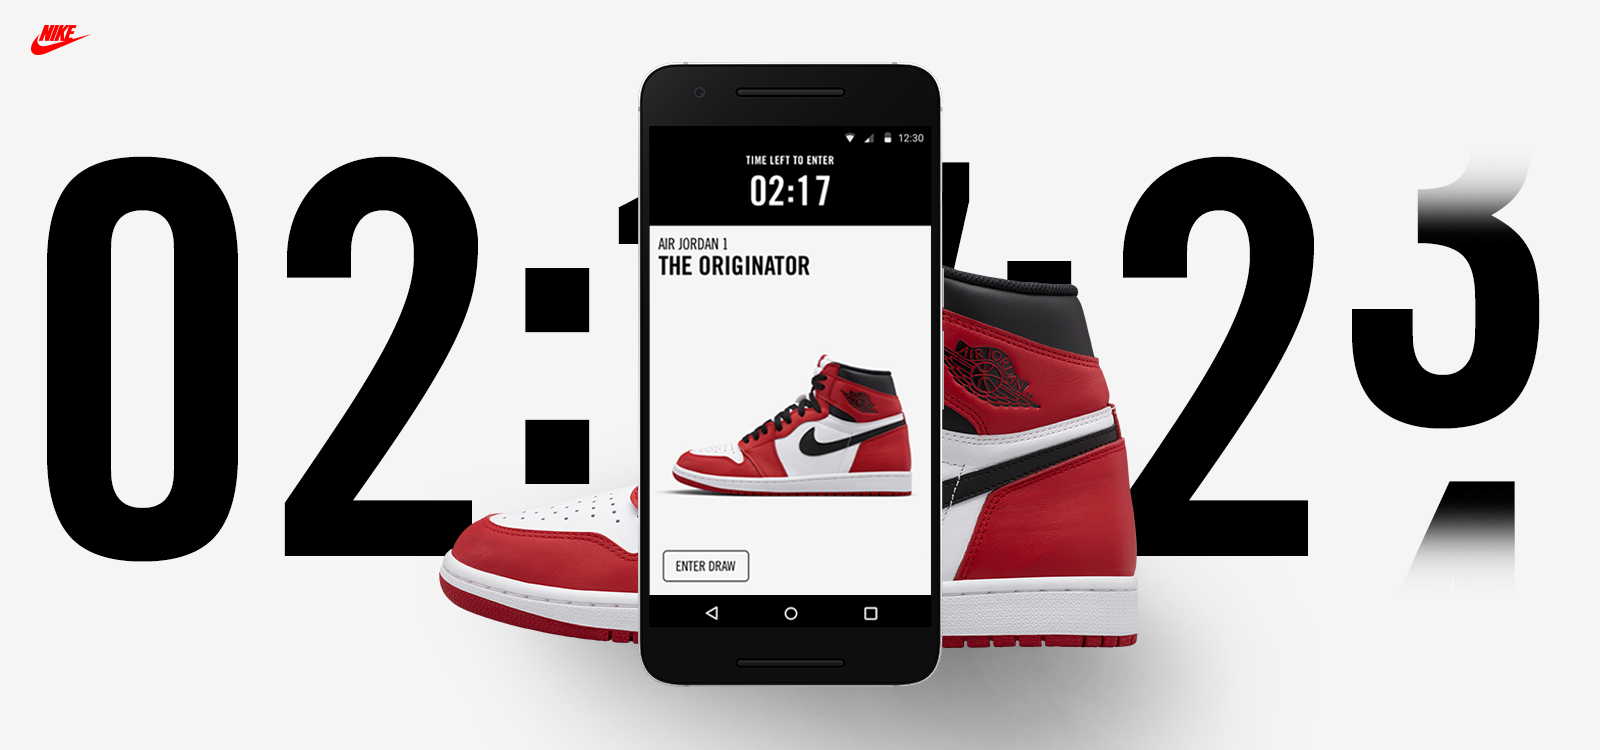 Nike's SNKRS Experience Elevated - Nike